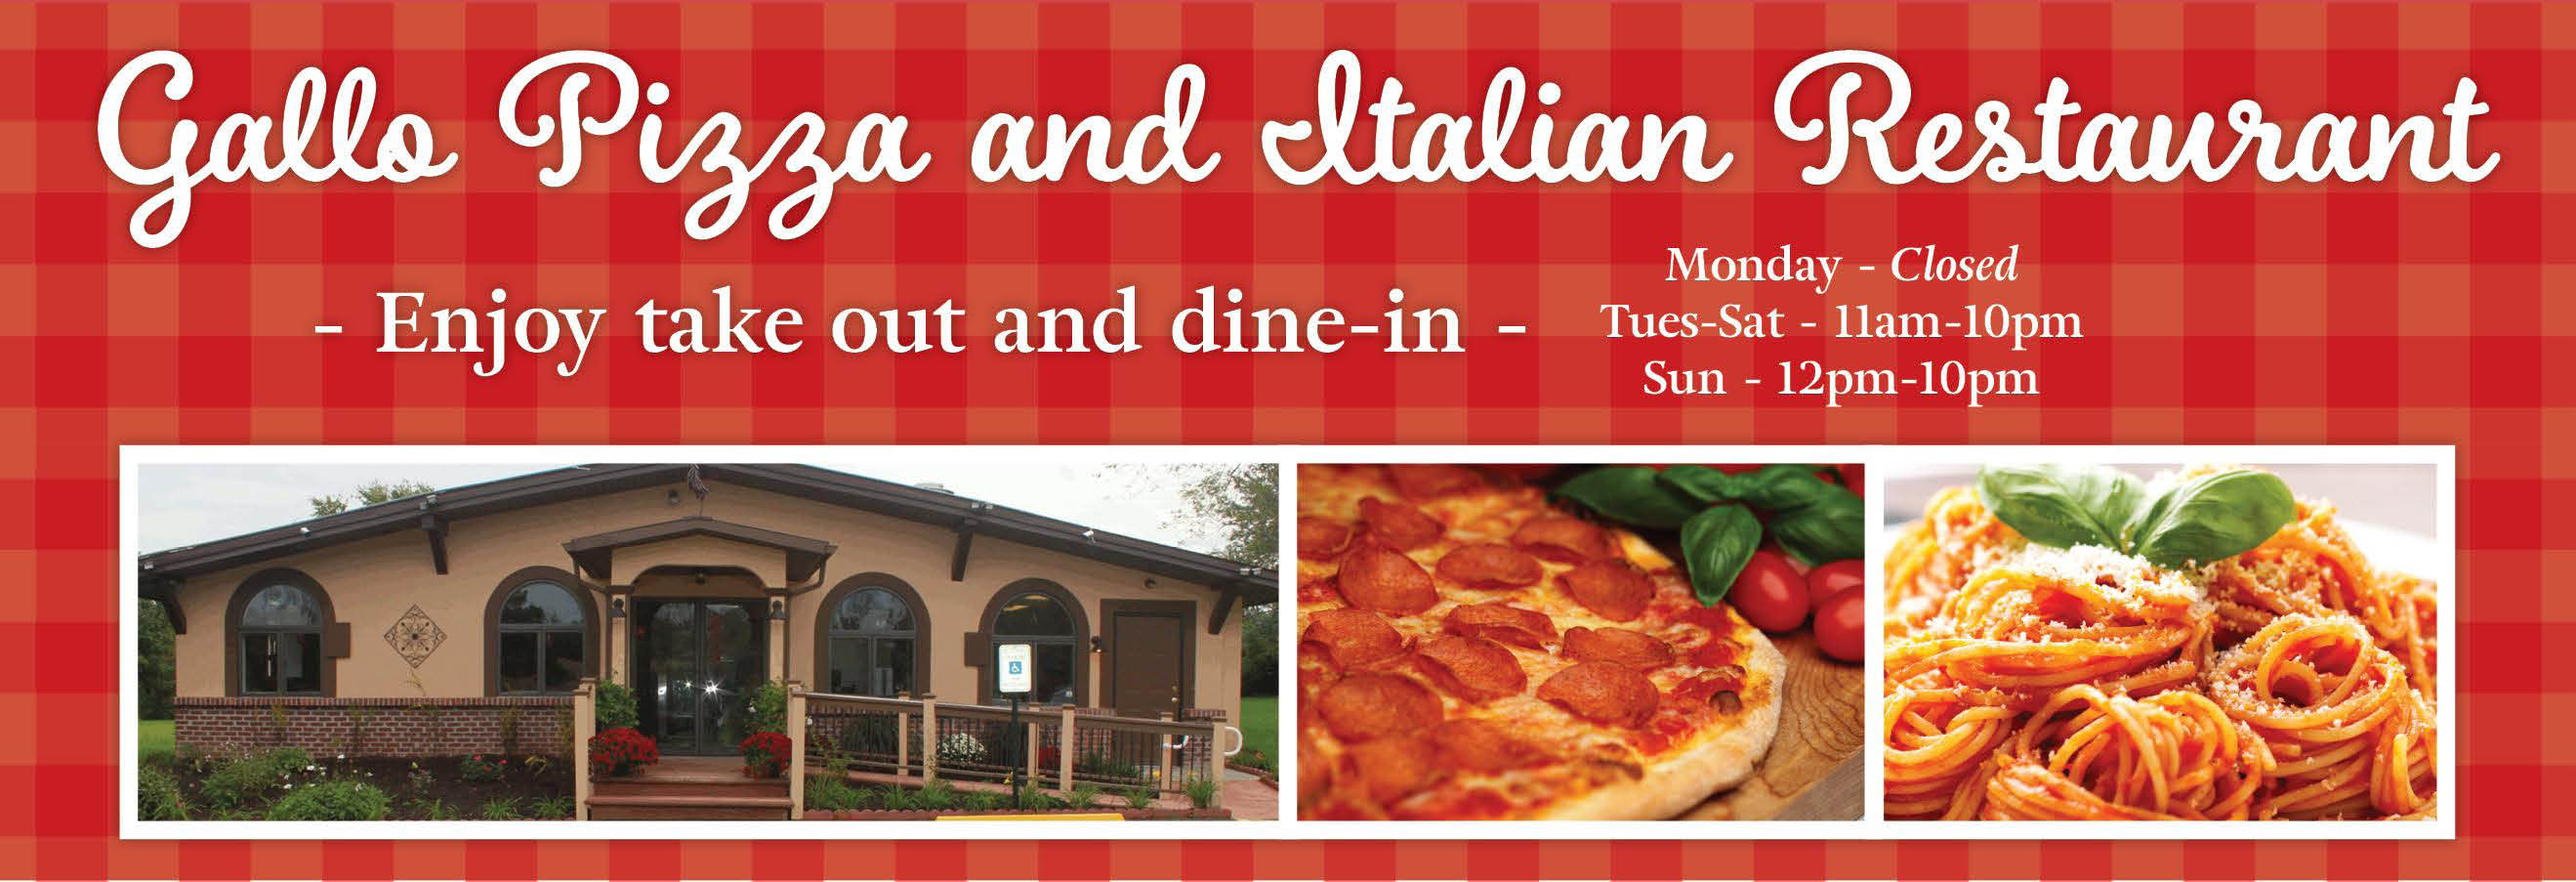 Gallo Italian Restaurant, Pizza, Pasta, Subs, Sandwiches, Italian, Dinner, Lunch